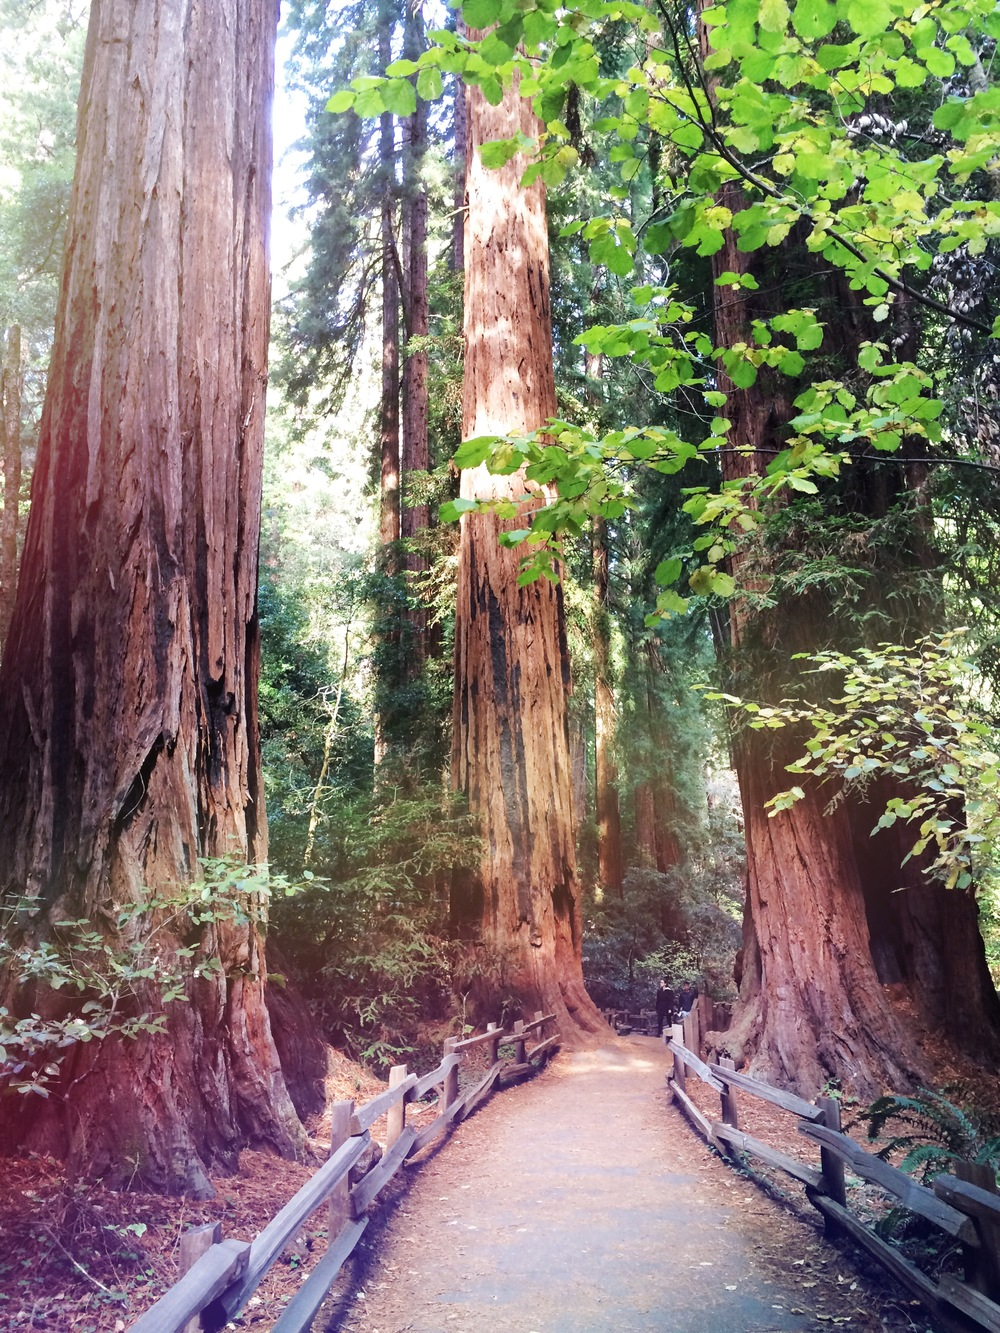 Muir Woods, California. The Redwoods spoke to me. One of the most inspirational places I've been to.